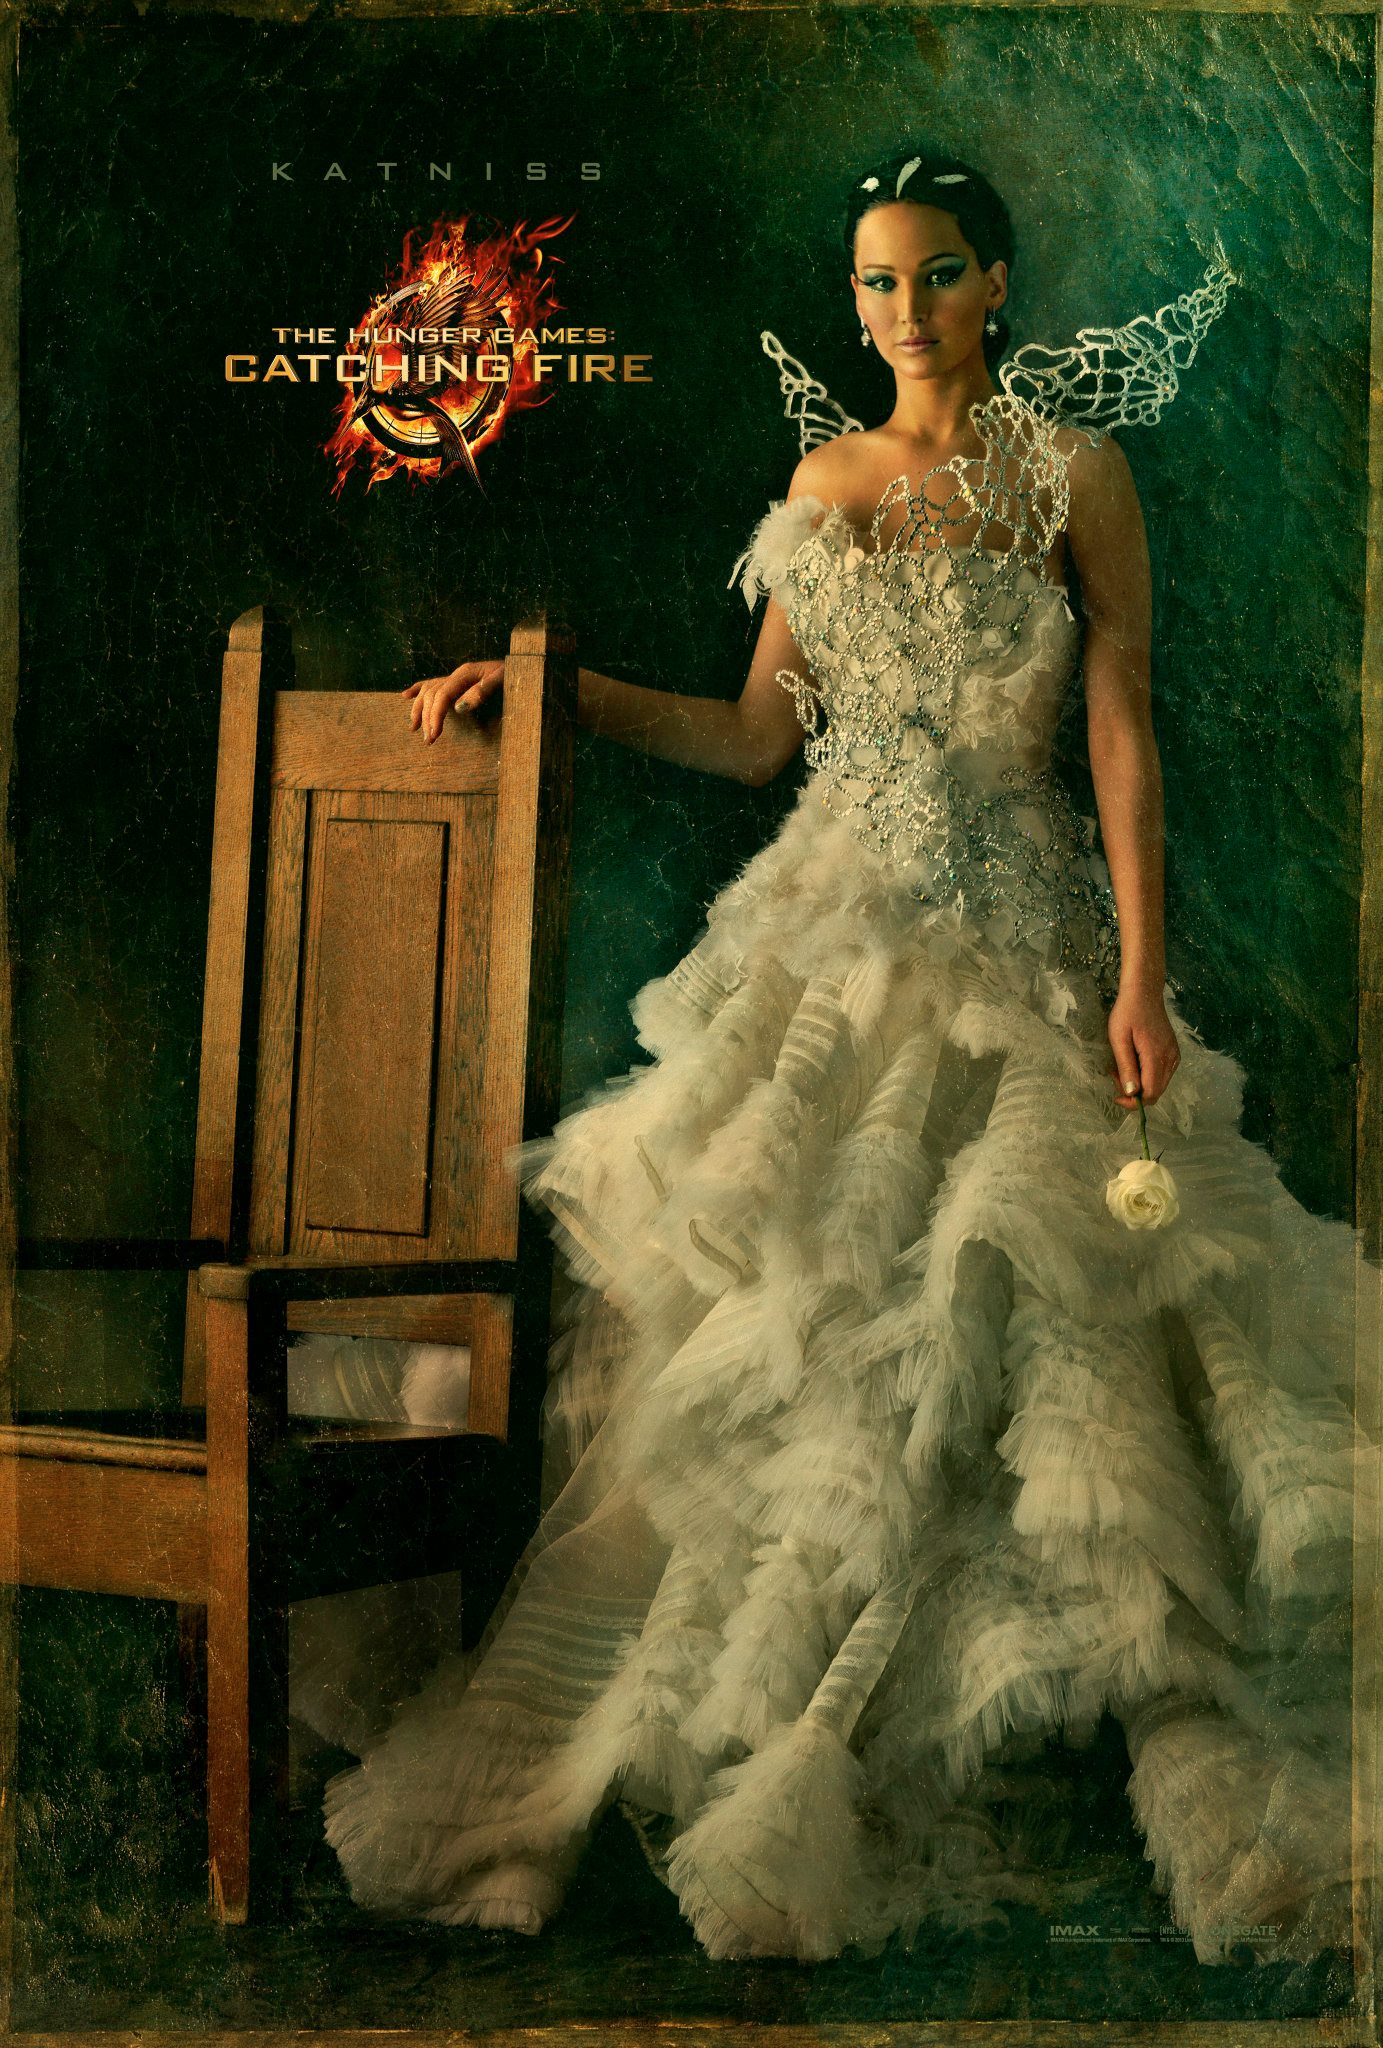 Stunning new Character posters for The Hunger Games